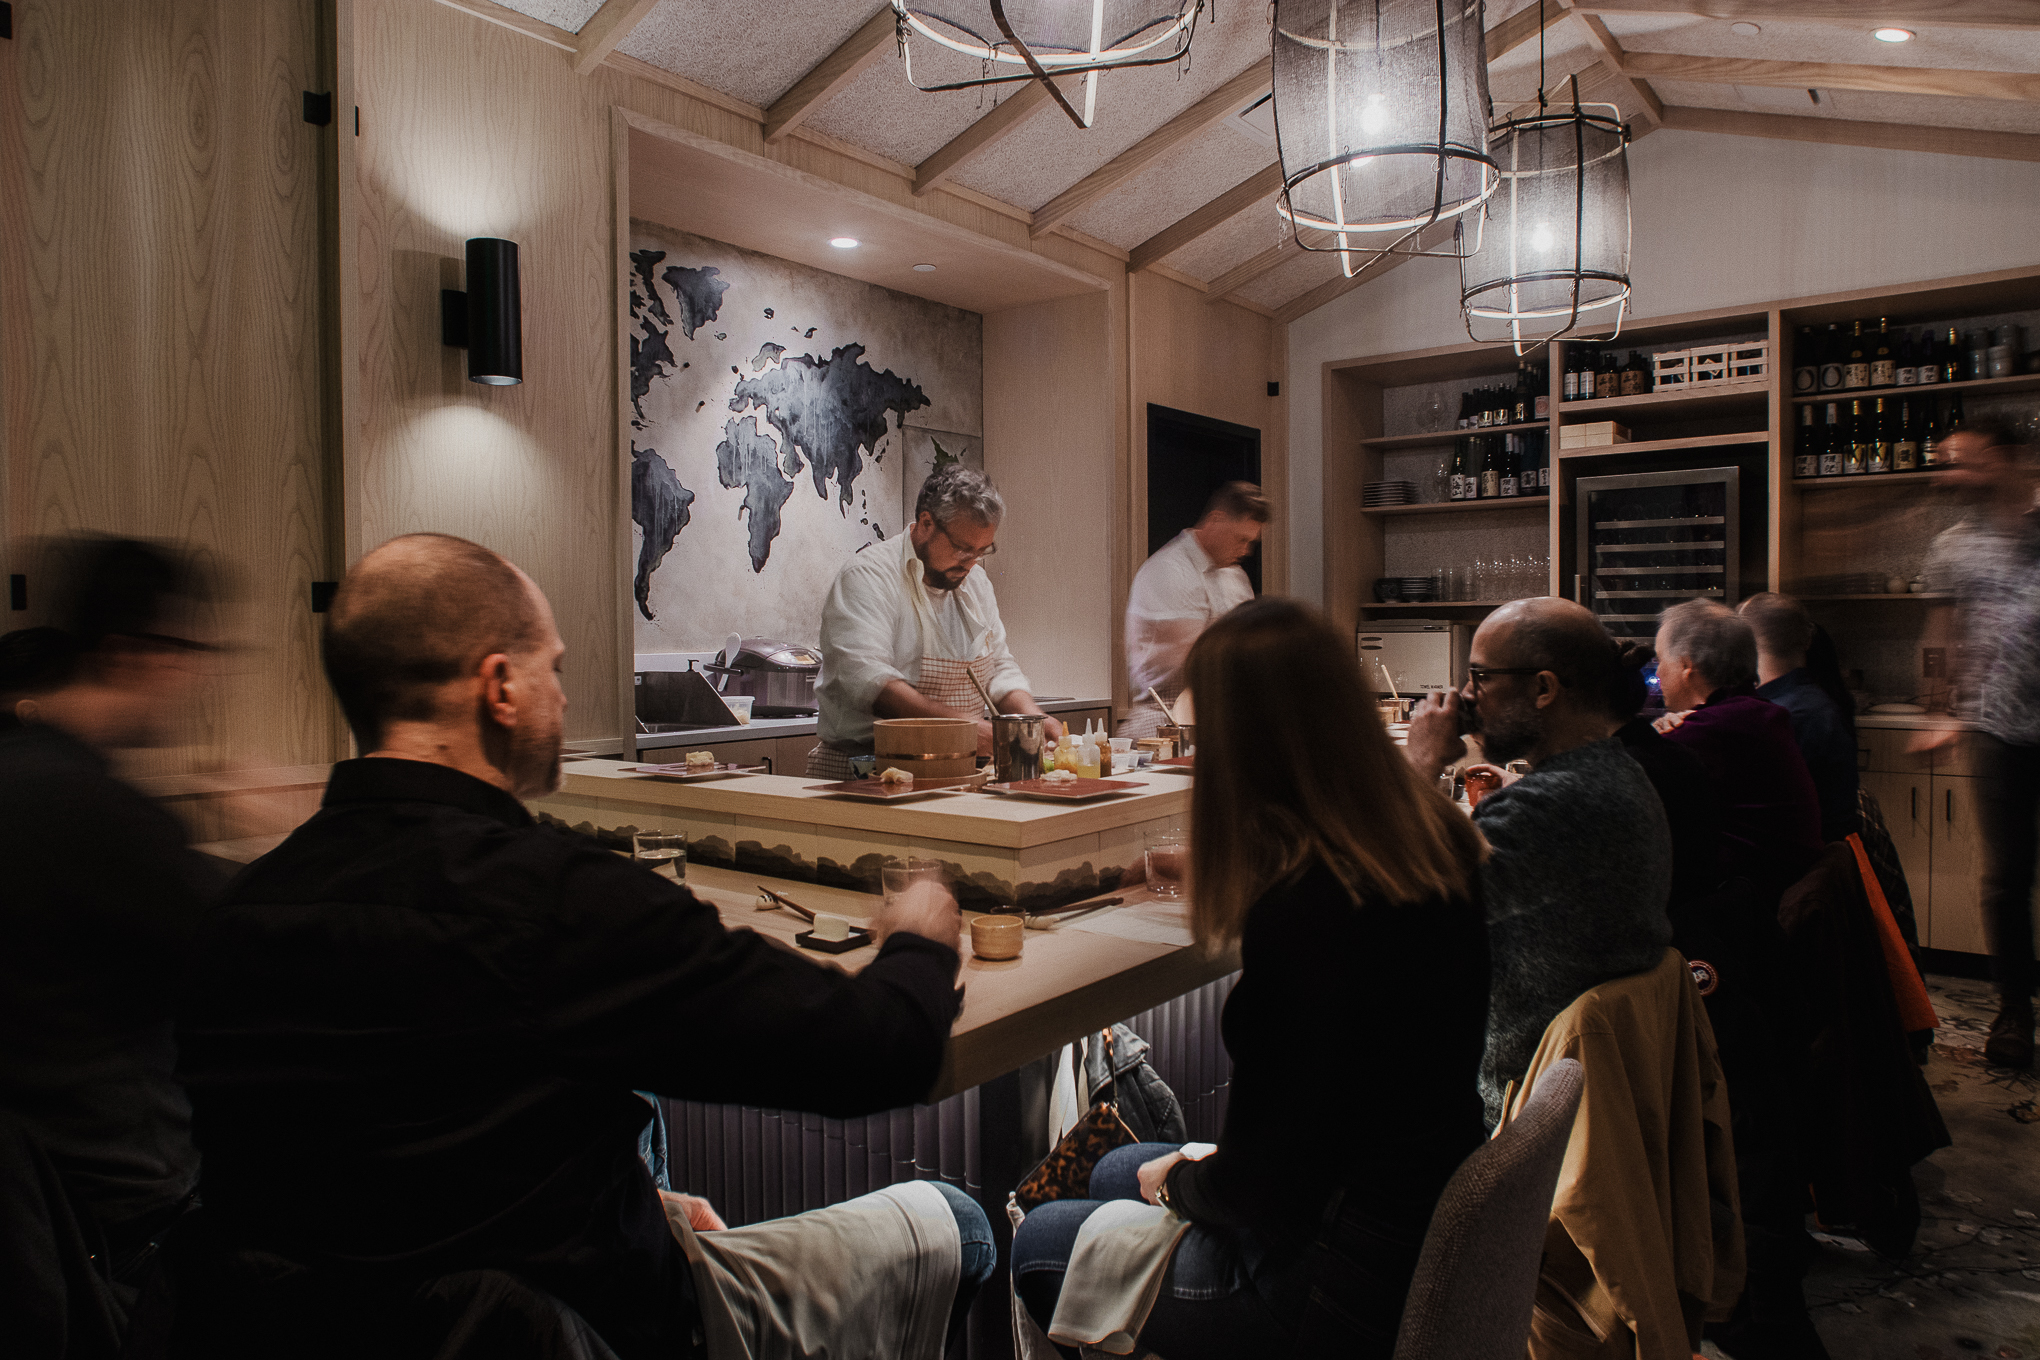 Patrons sit at a small sushi bar with two chefs behind the bar